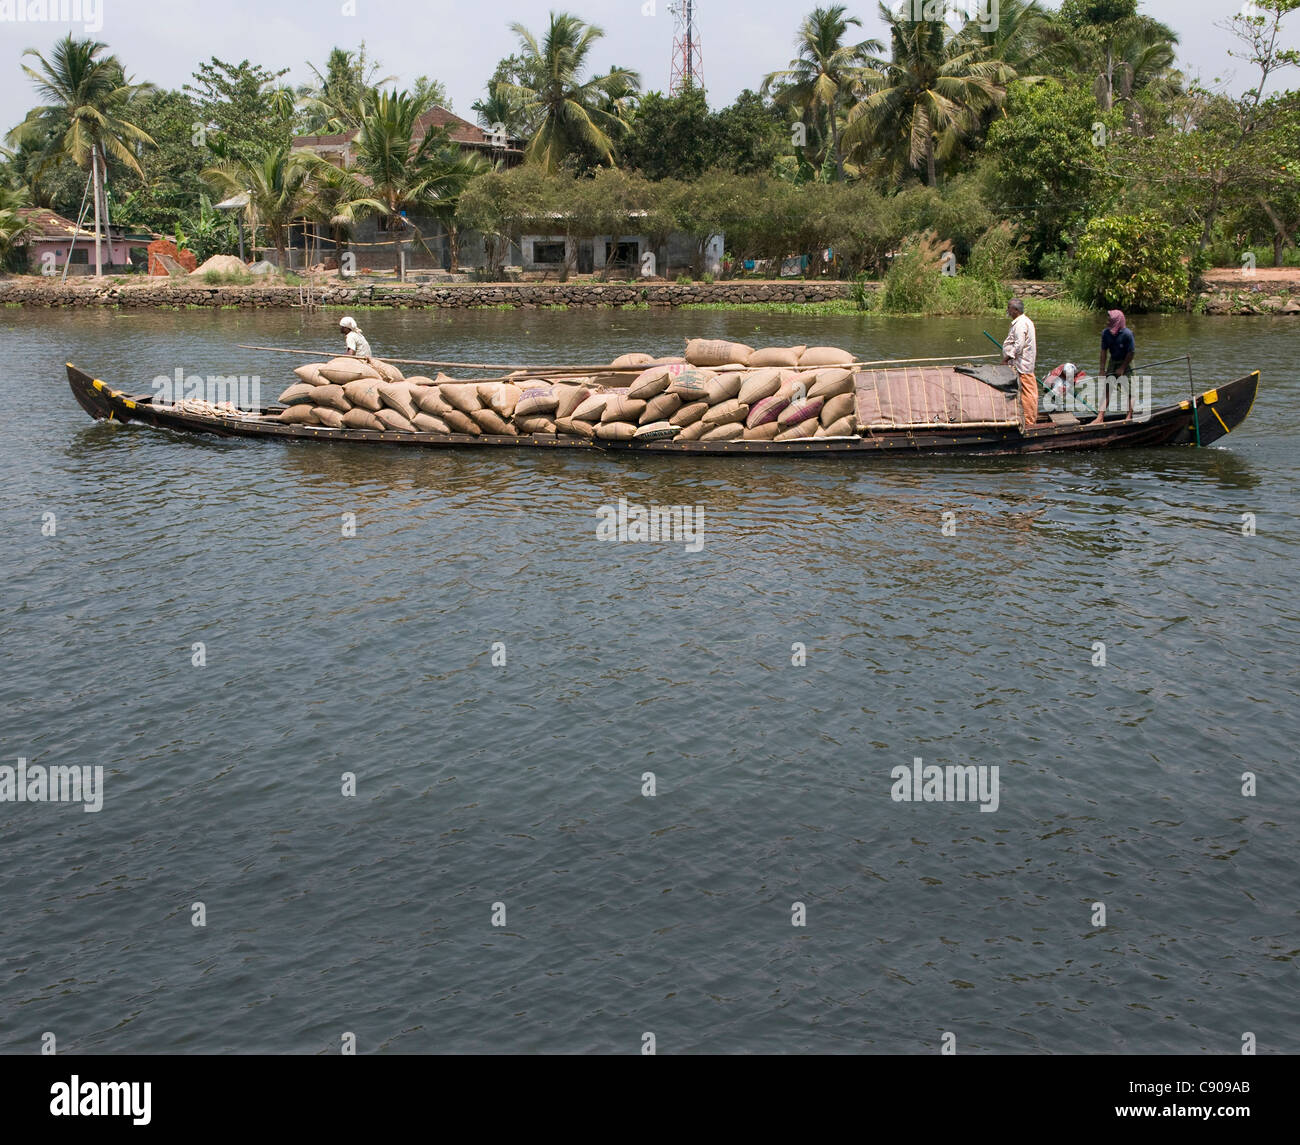 Rice sacks being transported in an 'original' rice boat along the backwaters in the RIce Belt area of Kerala - Stock Image